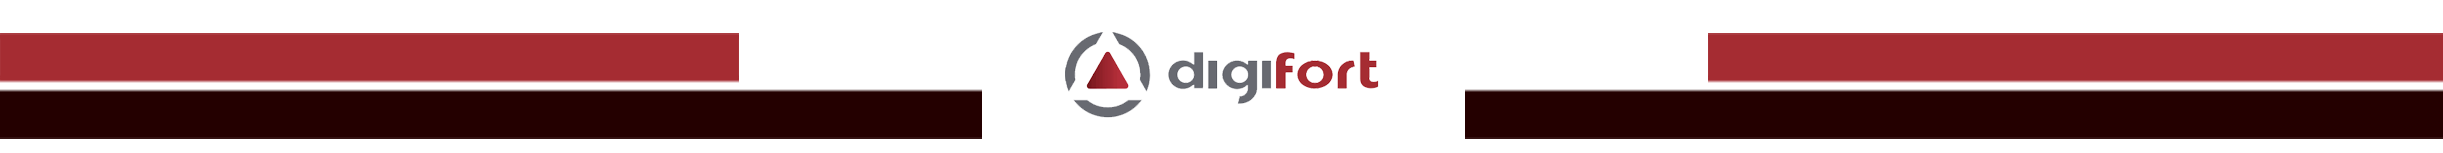 Digifort - Software VMS e de vídeo analise para diversos tipos de projetos